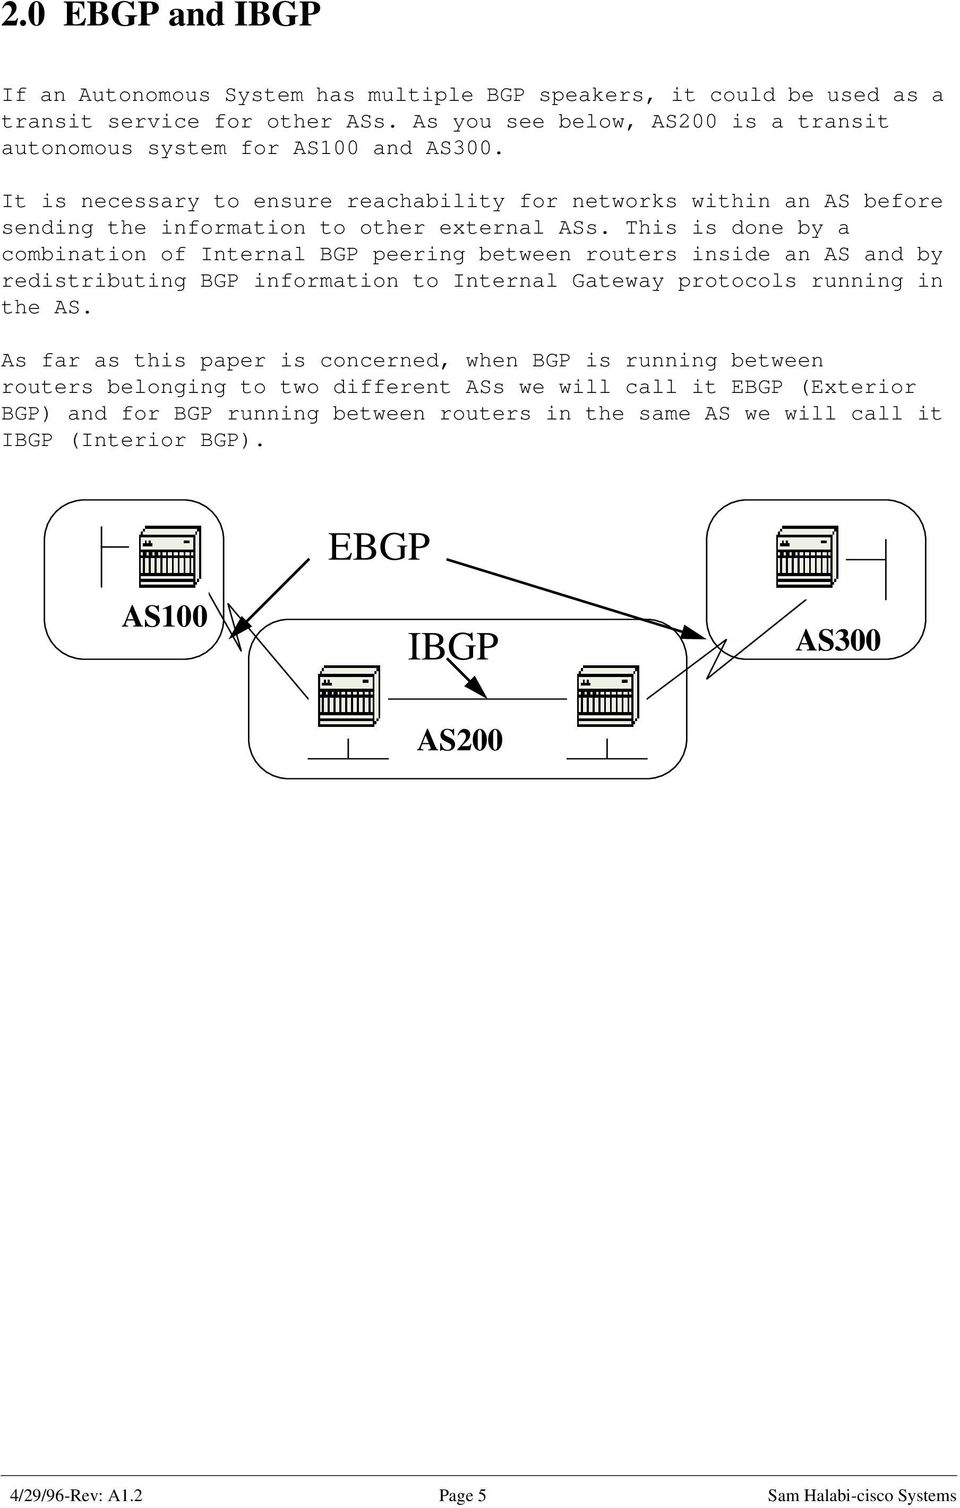 This is done by a combination of Internal BGP peering between routers inside an AS and by redistributing BGP information to Internal Gateway protocols running in the AS.